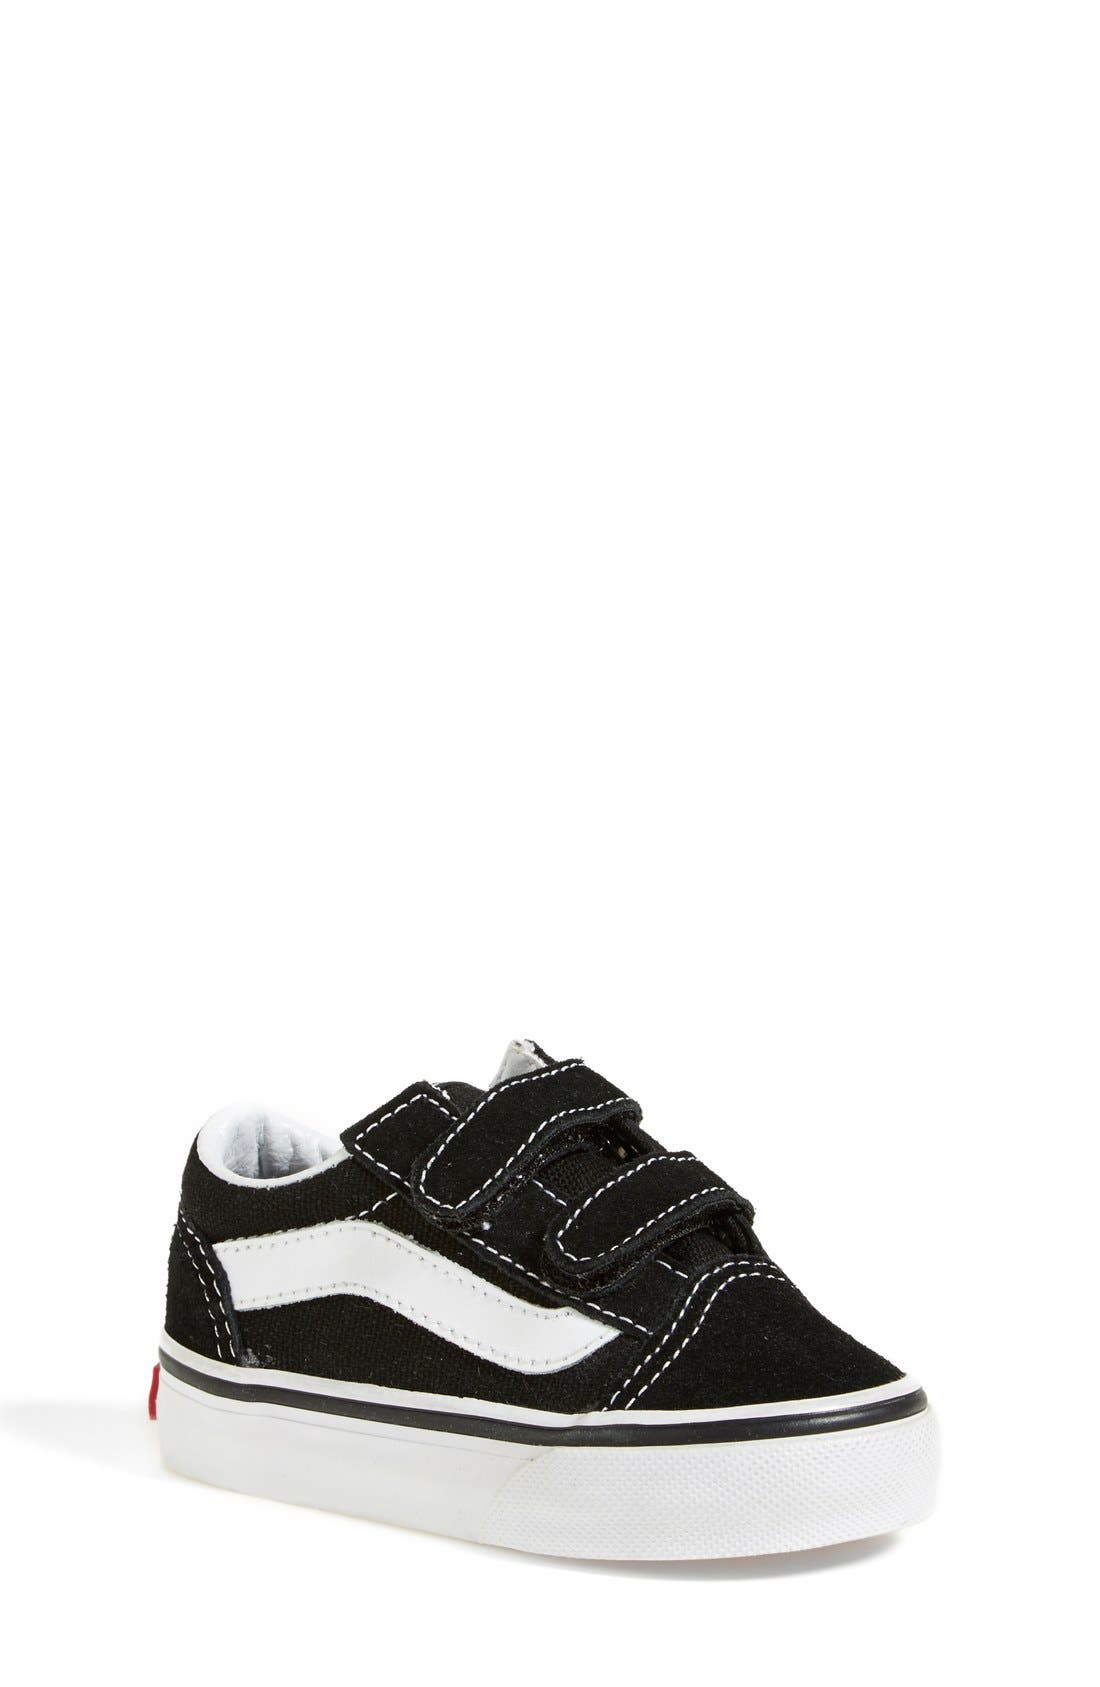 'Old Skool V' Sneaker,                         Main,                         color, 001